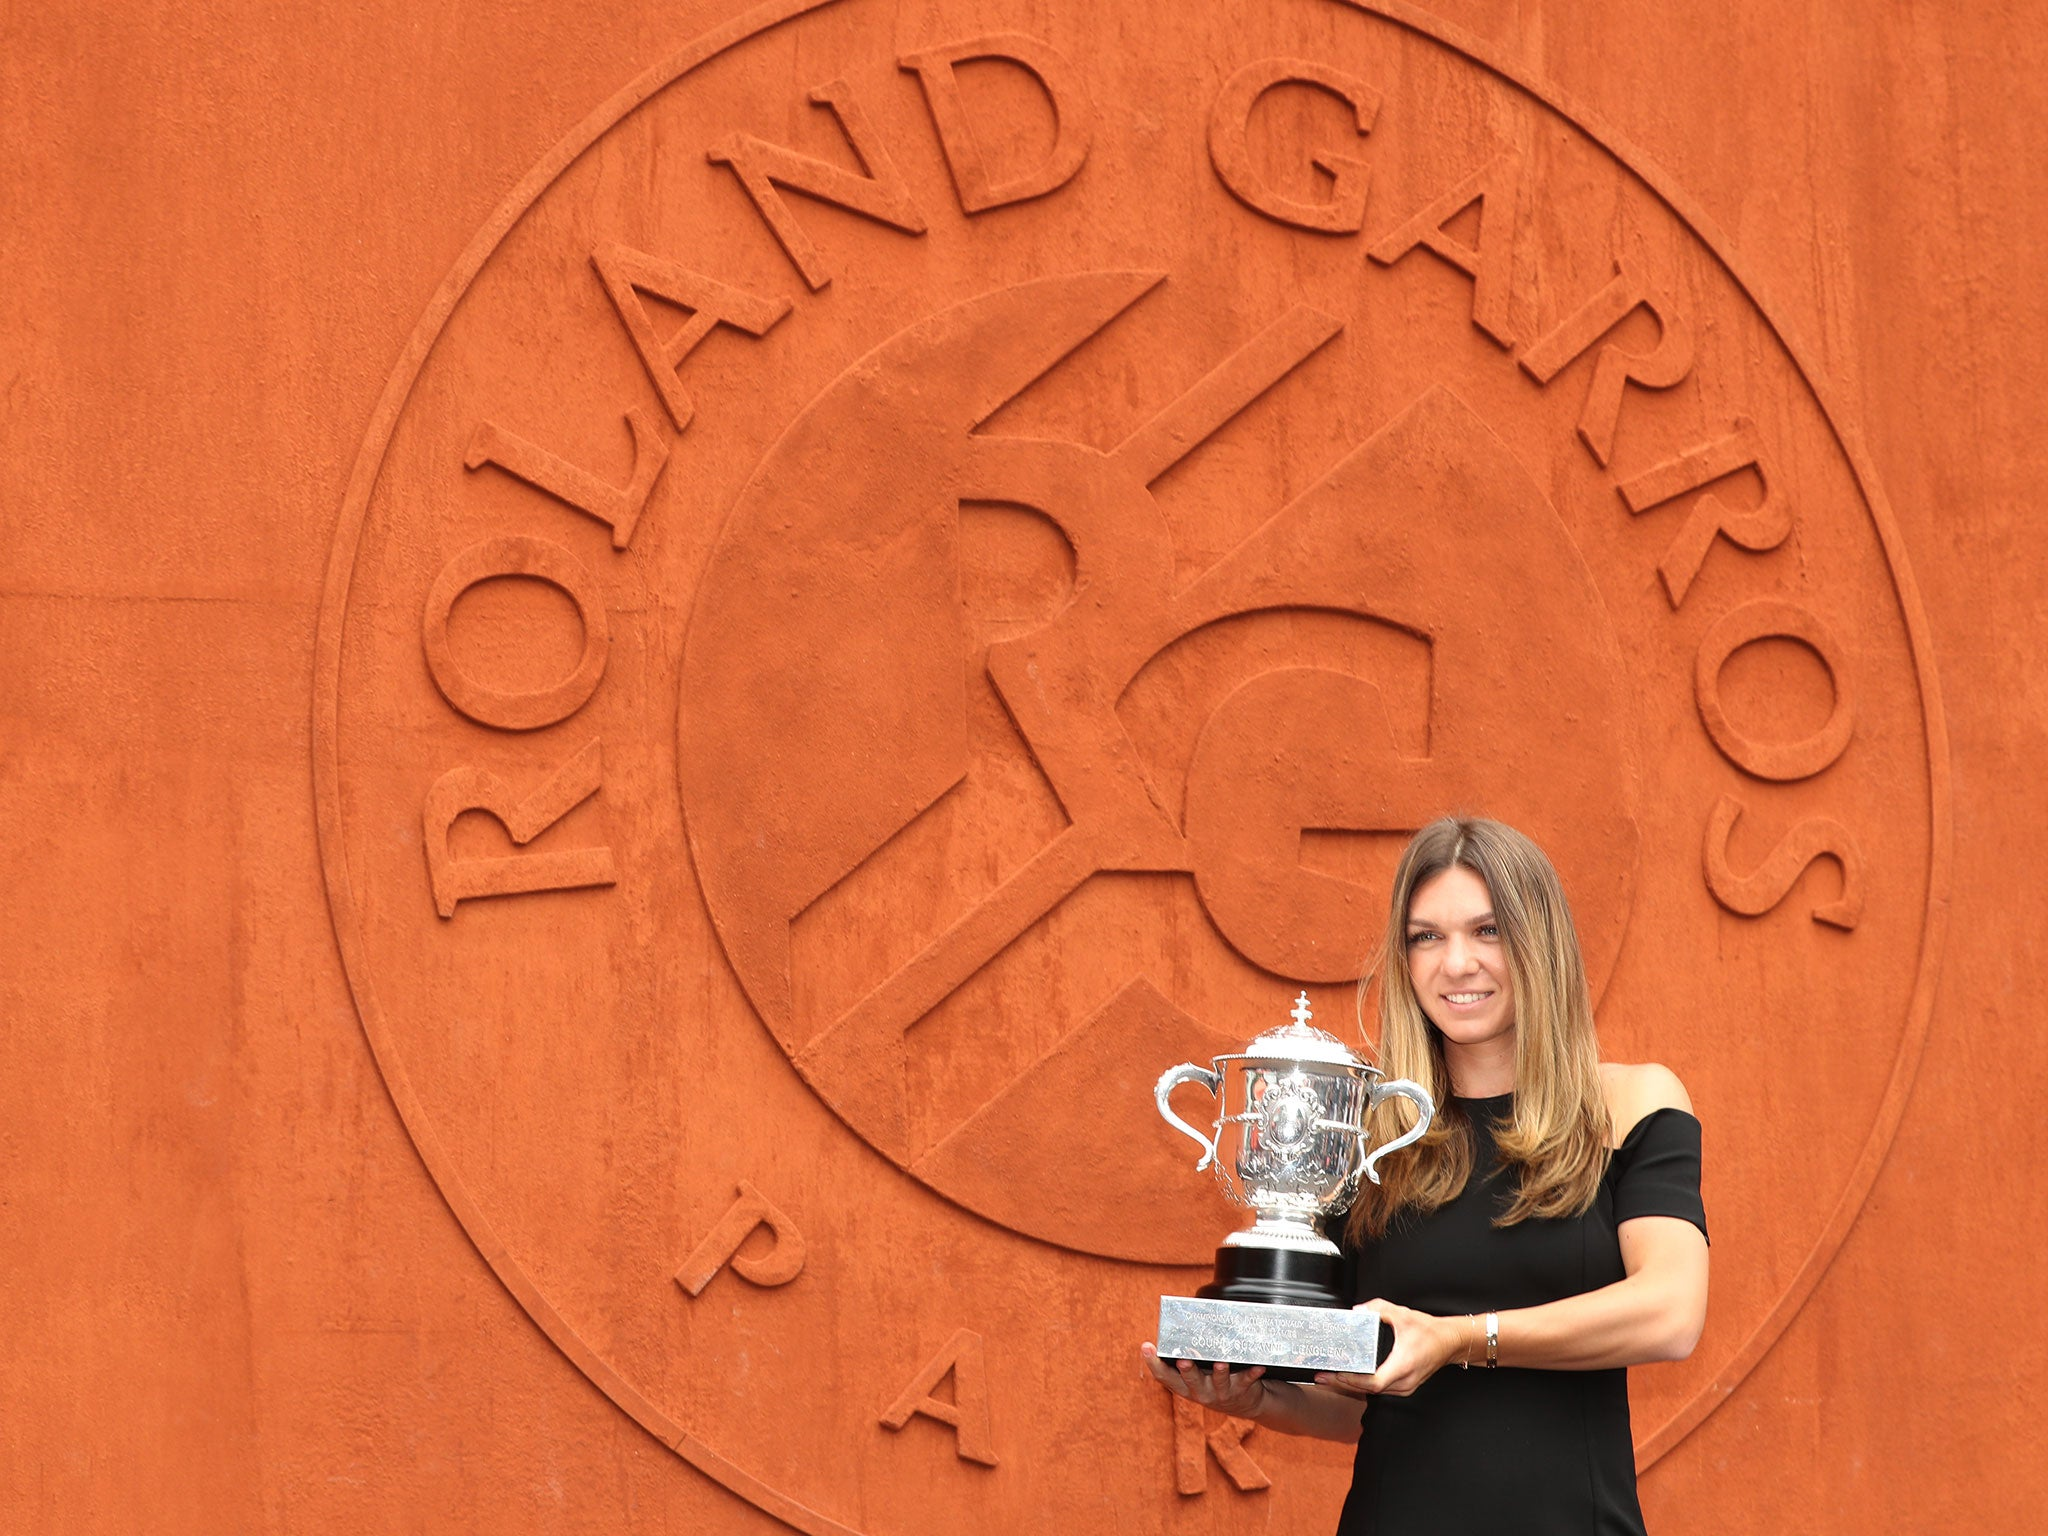 Simona Halep making most of the moment before turning attention to Wimbledon